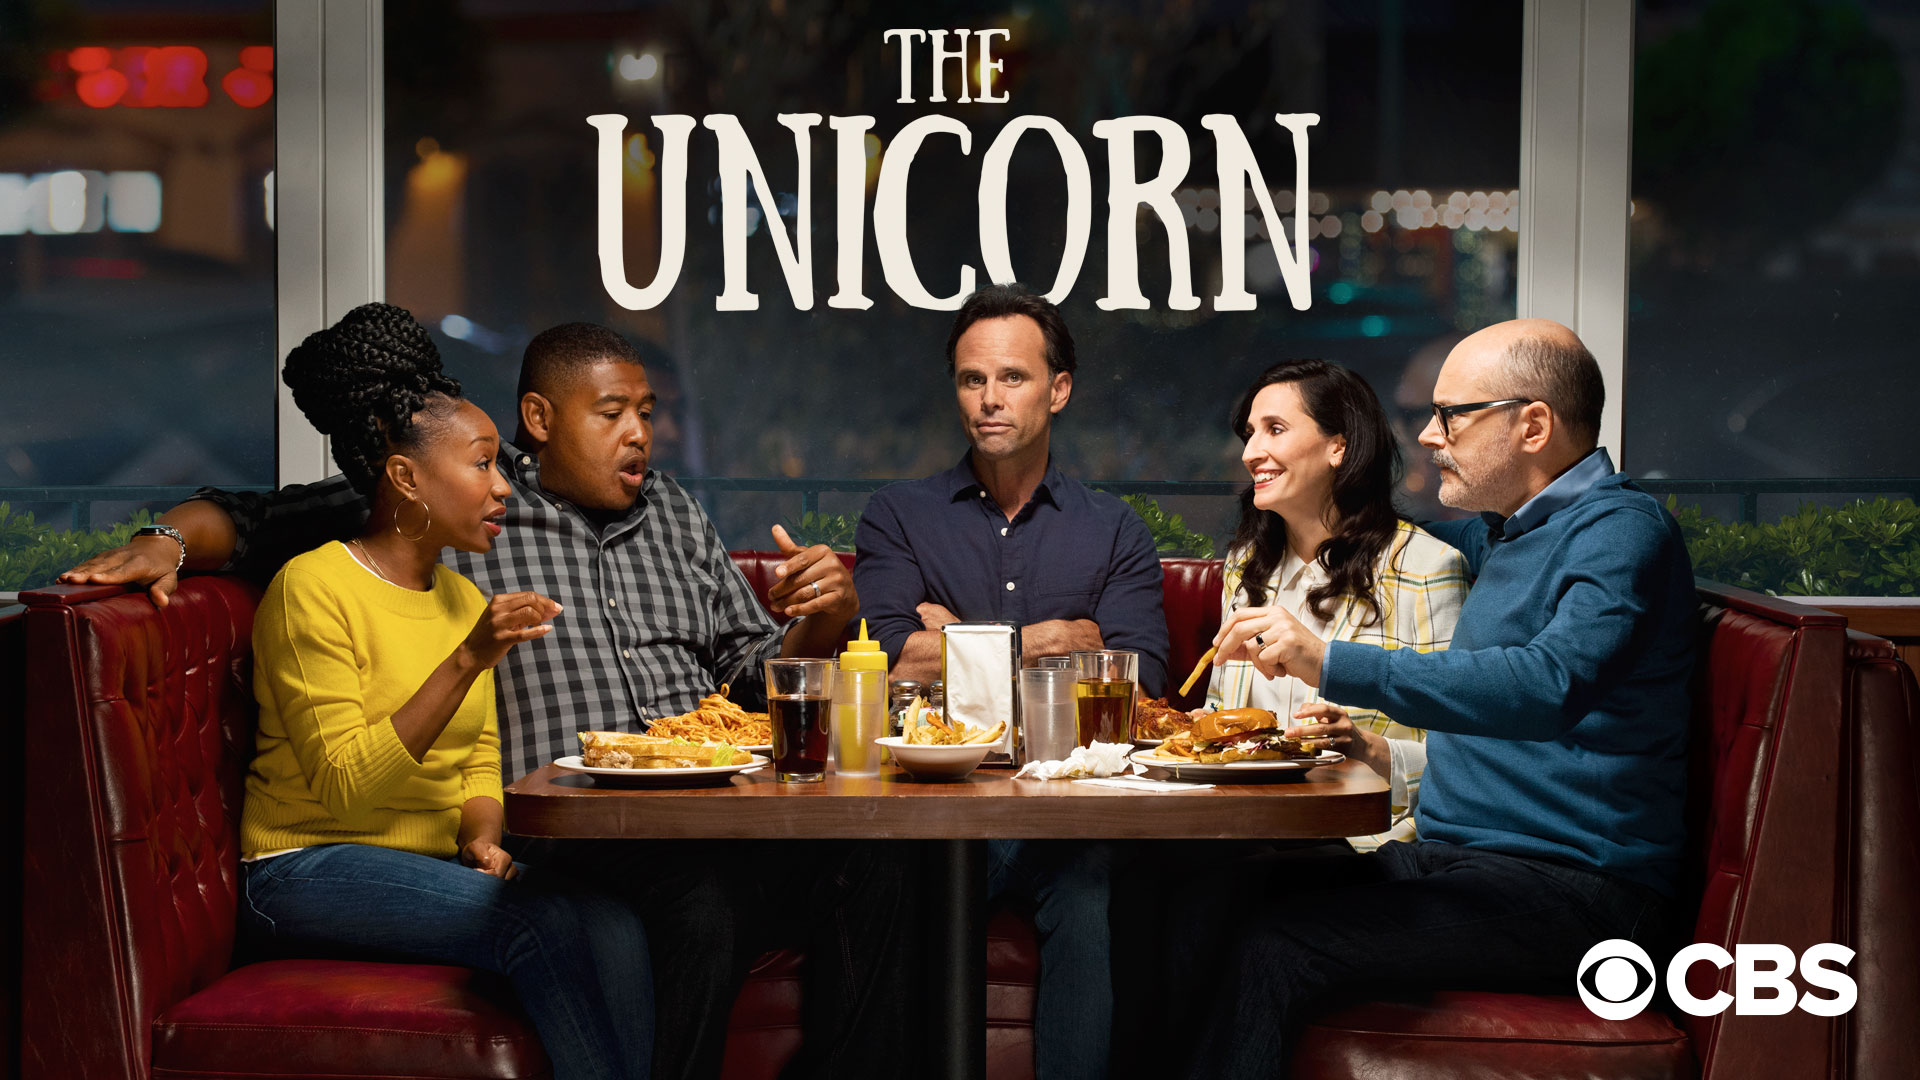 The Unicorn, Season 1